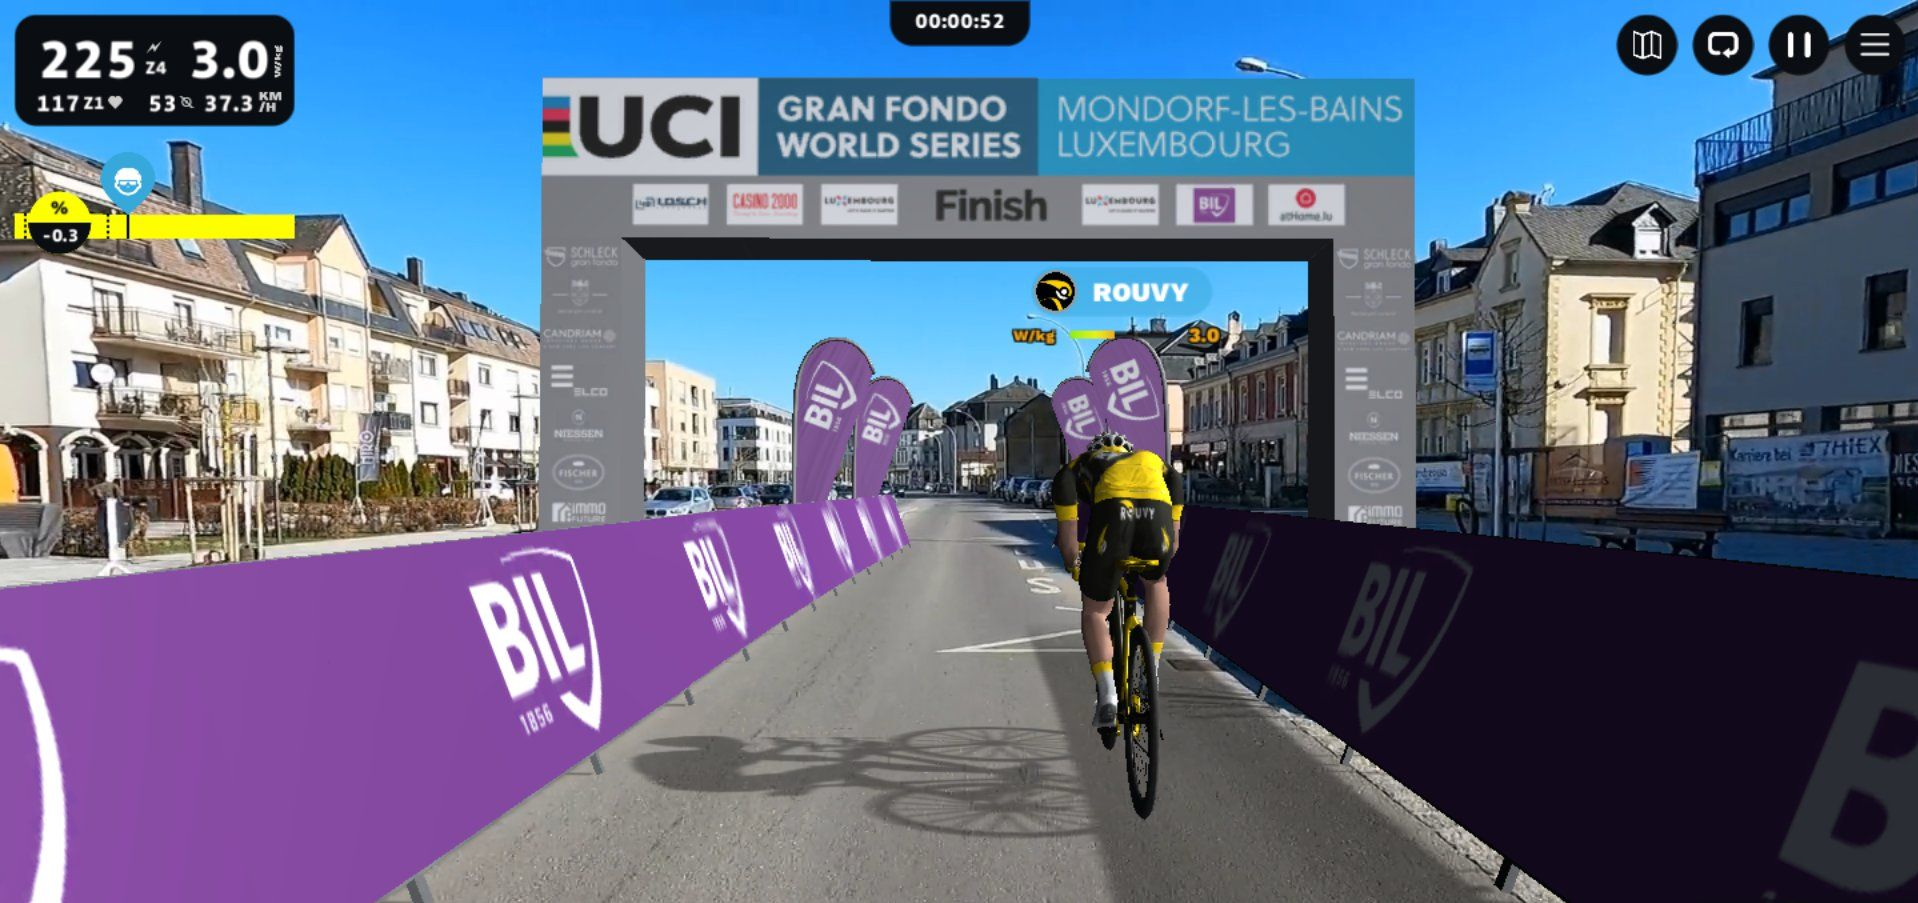 Schleck Gran Fondo releases a Virtual Extension of its race on ROUVY